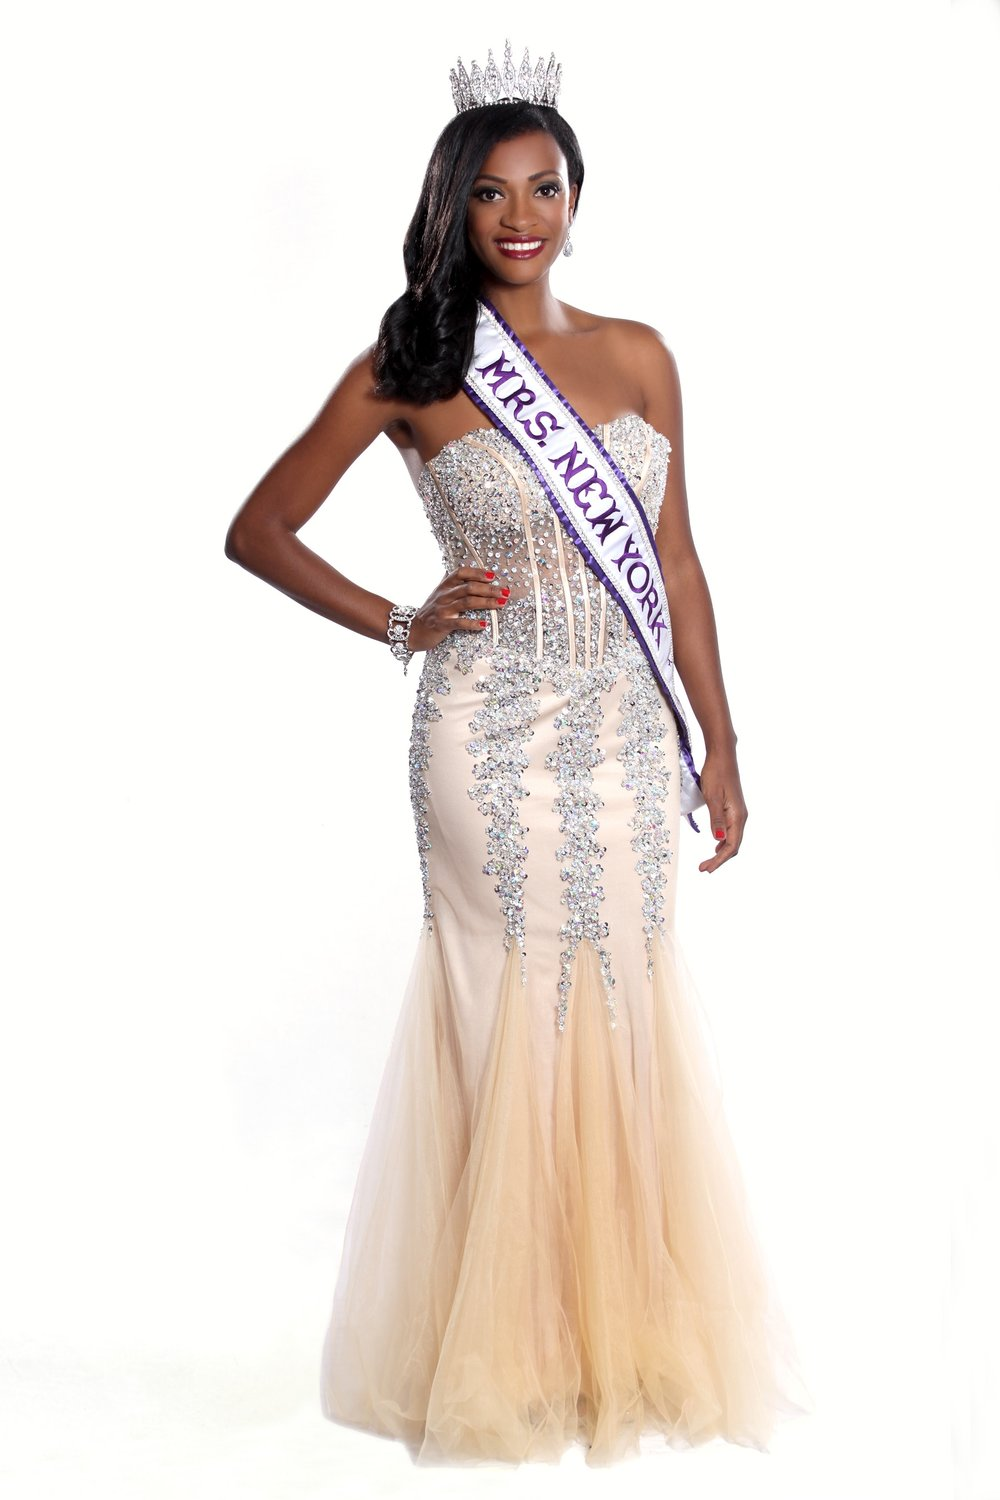 Official Mrs. NY Pic.jpg